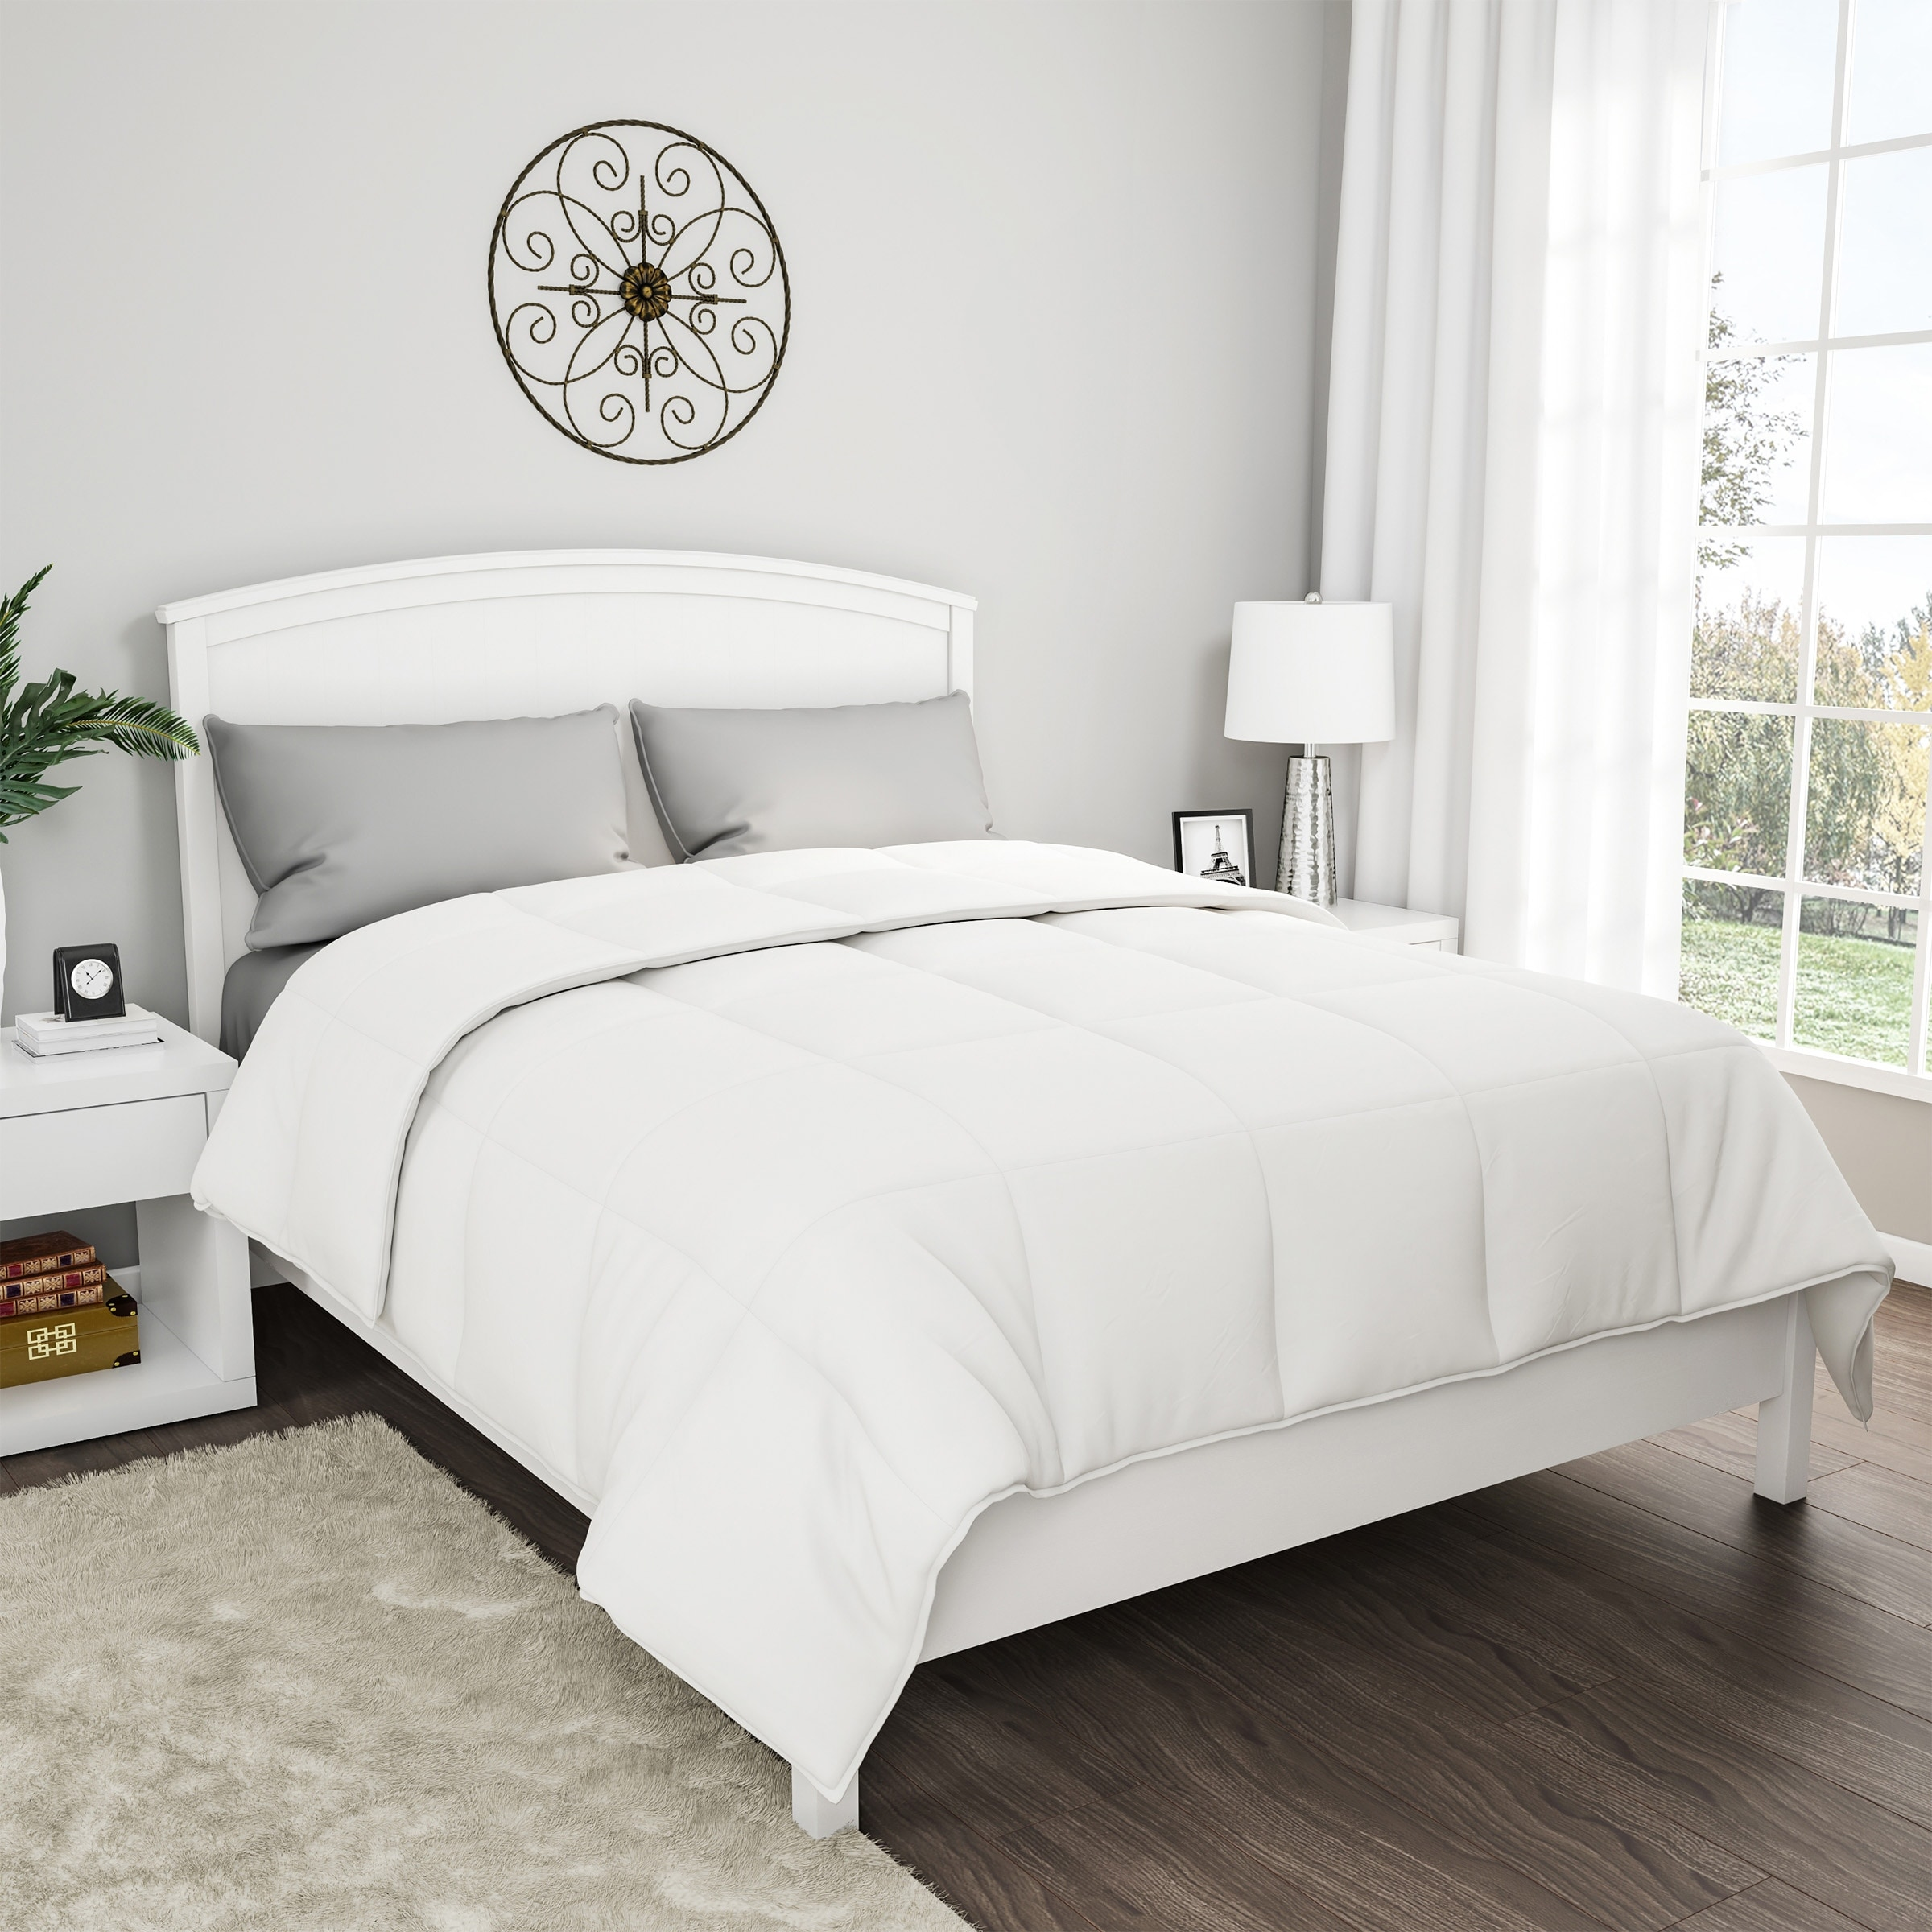 Windsor Home 100 Cotton Feather Down Bedding Comforter On Sale Overstock 10157133